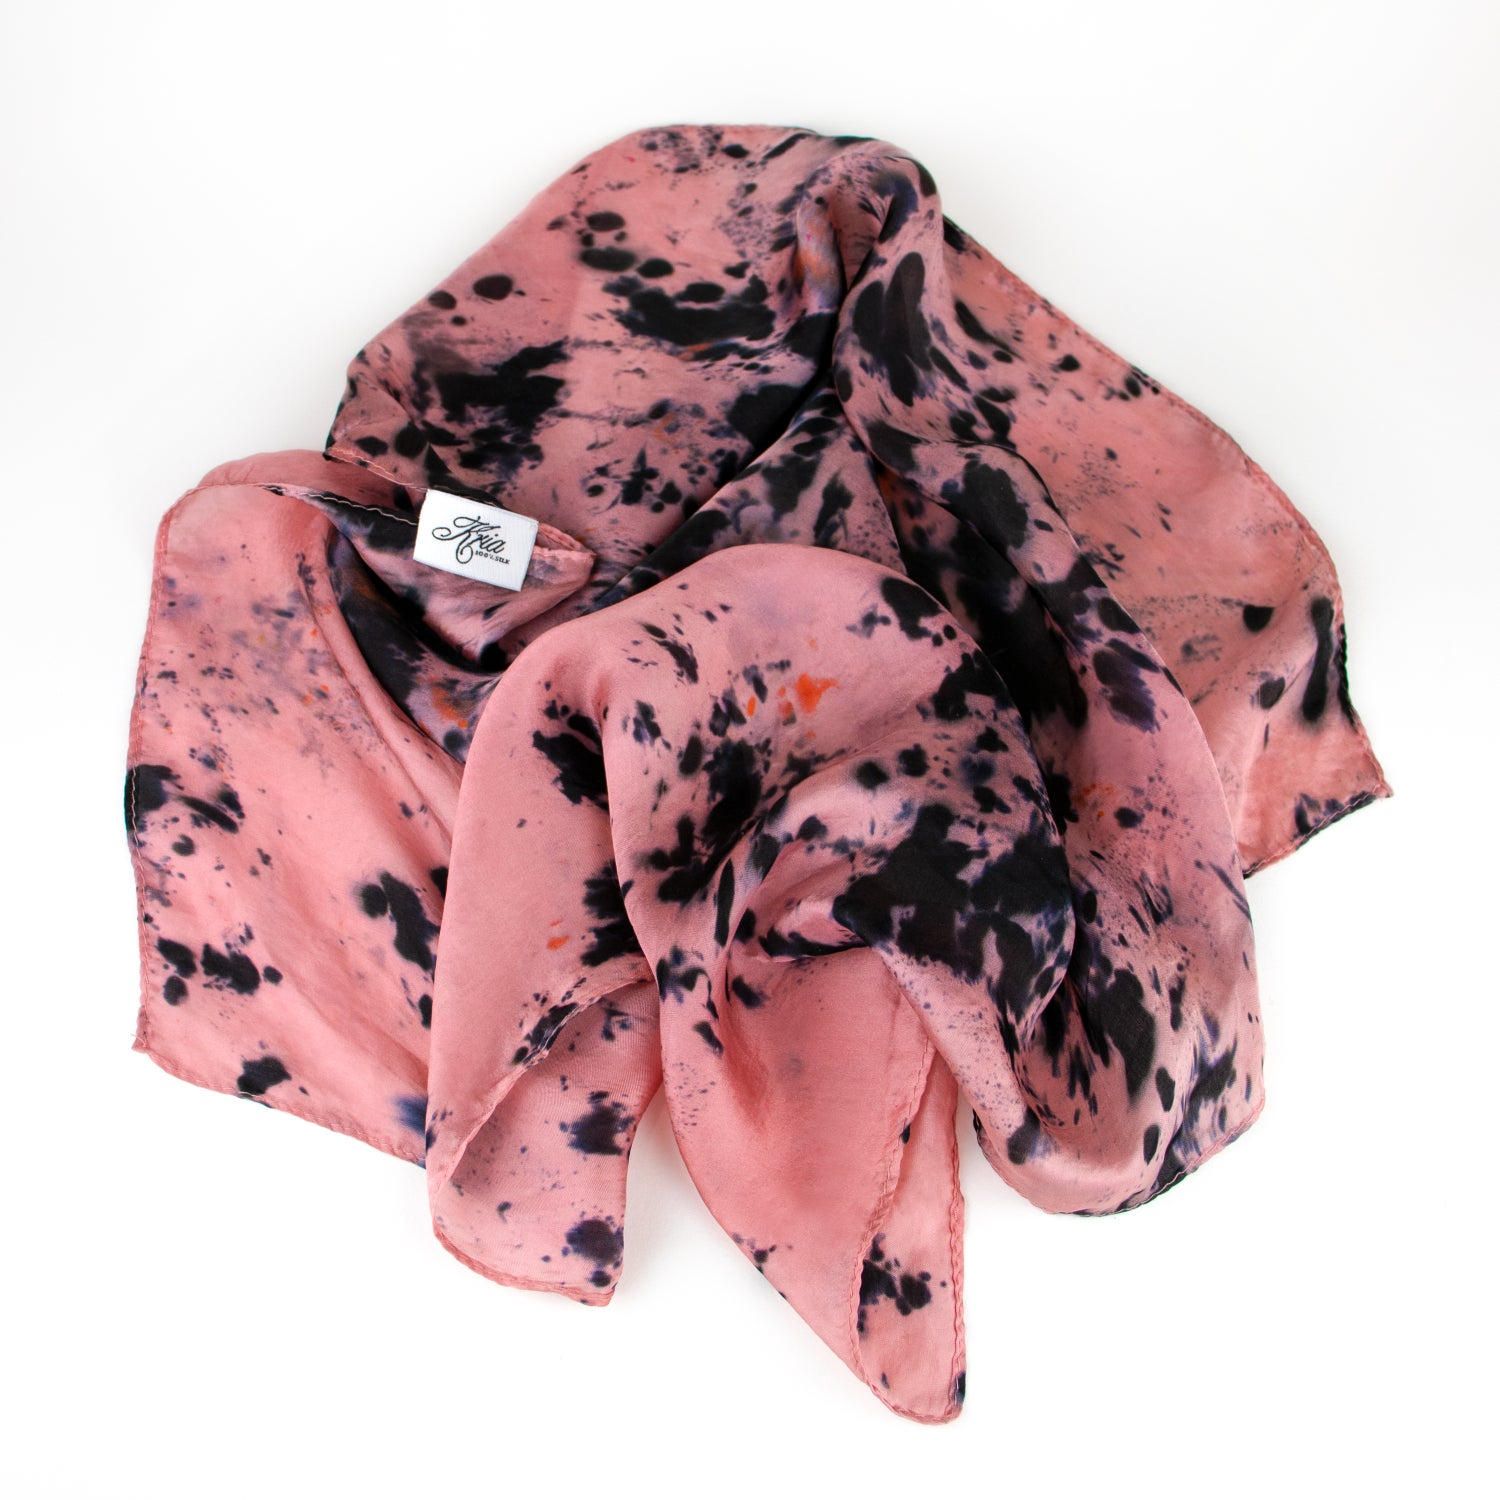 Image of Water Lily Hand-Dyed Silk Bandana by Kria